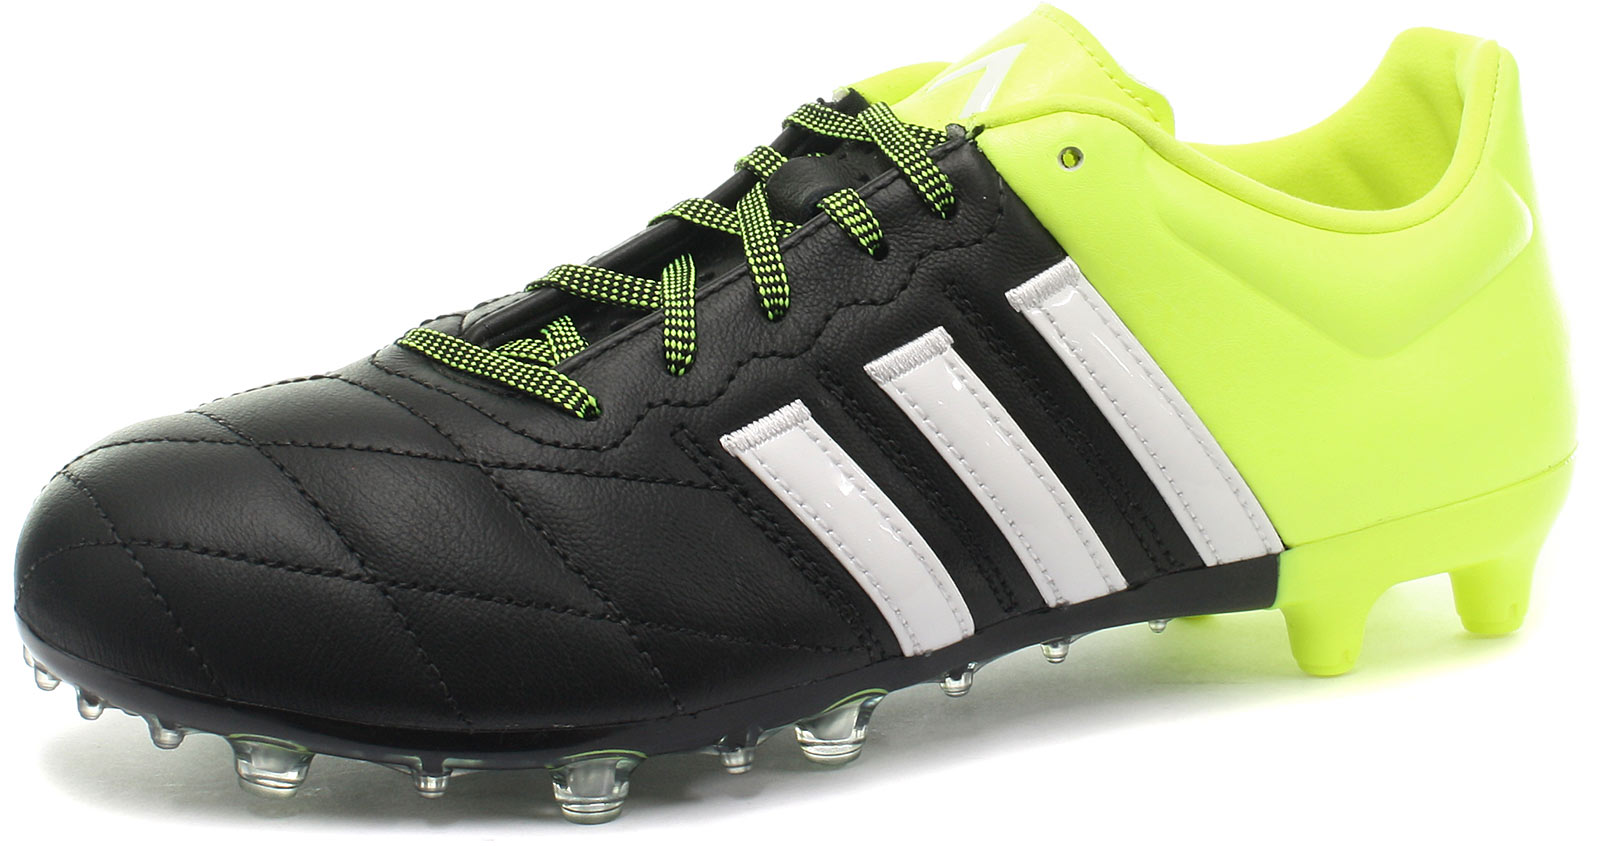 fea09e9e924 ... promo code adidas ace 15.2 fg ag leather mens football boots soccer  cleats all sizes 38cd6